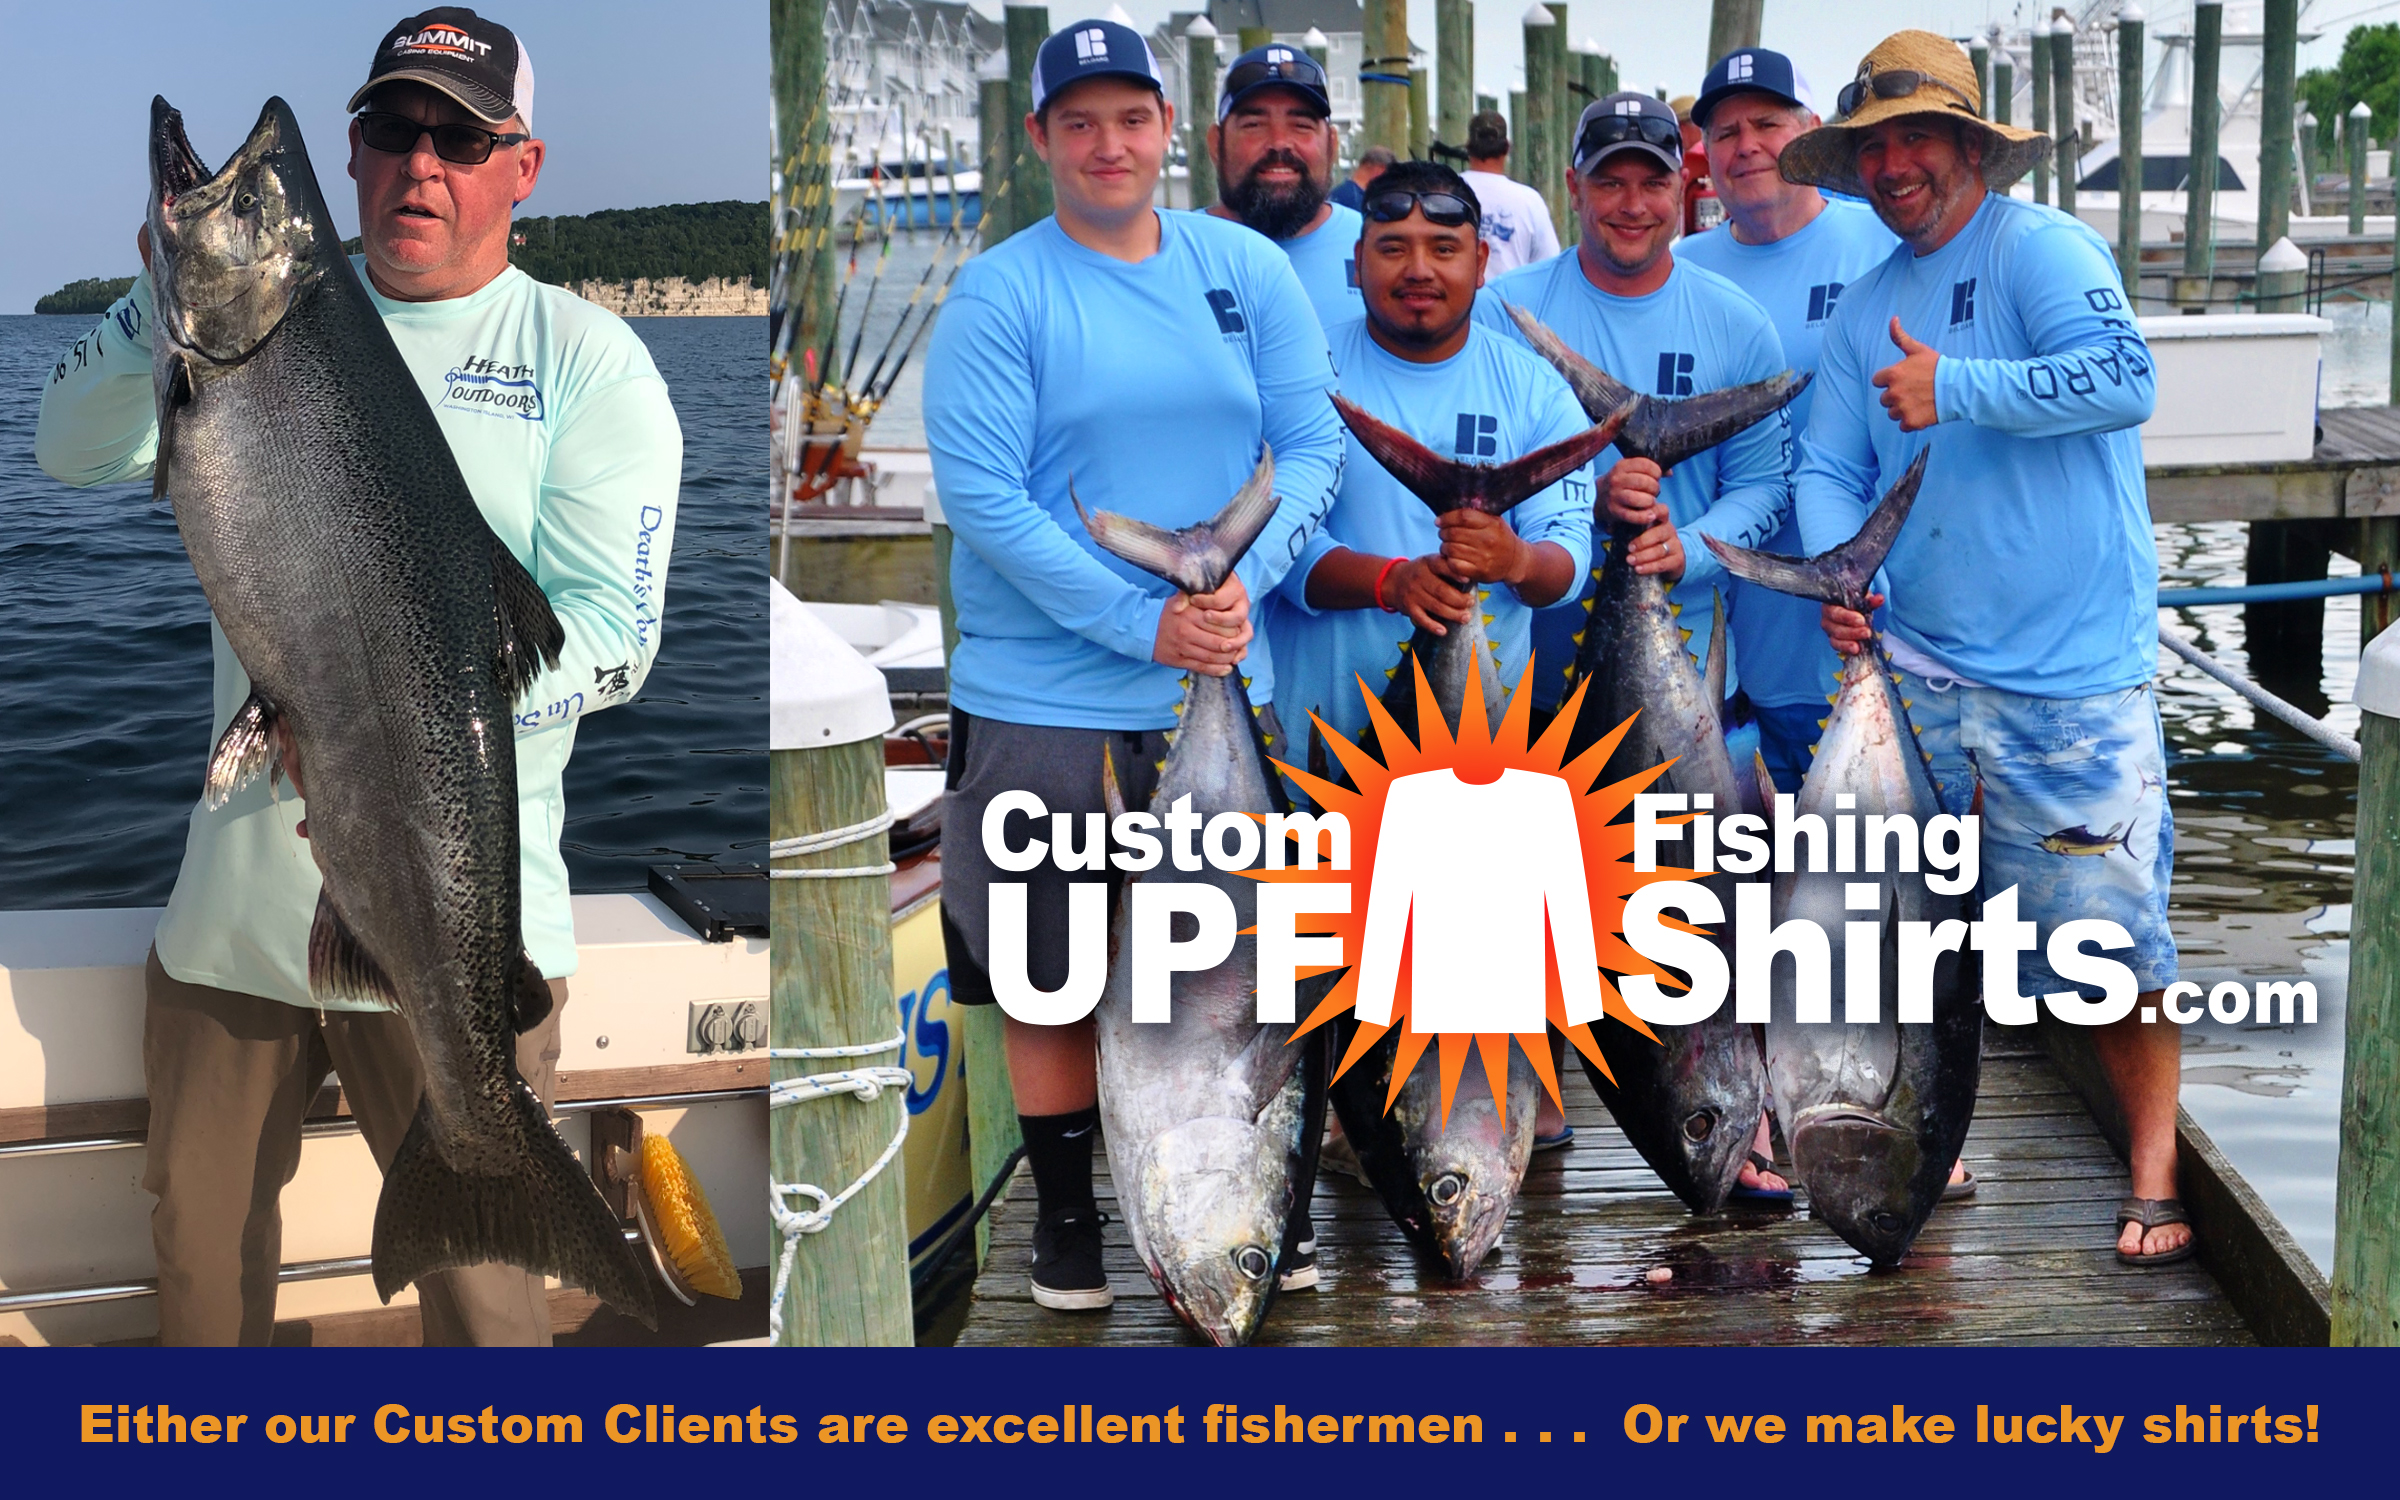 Custom-upf-fishing-shirts- Our Clients must be great fishermen - or we make lucky shirts!